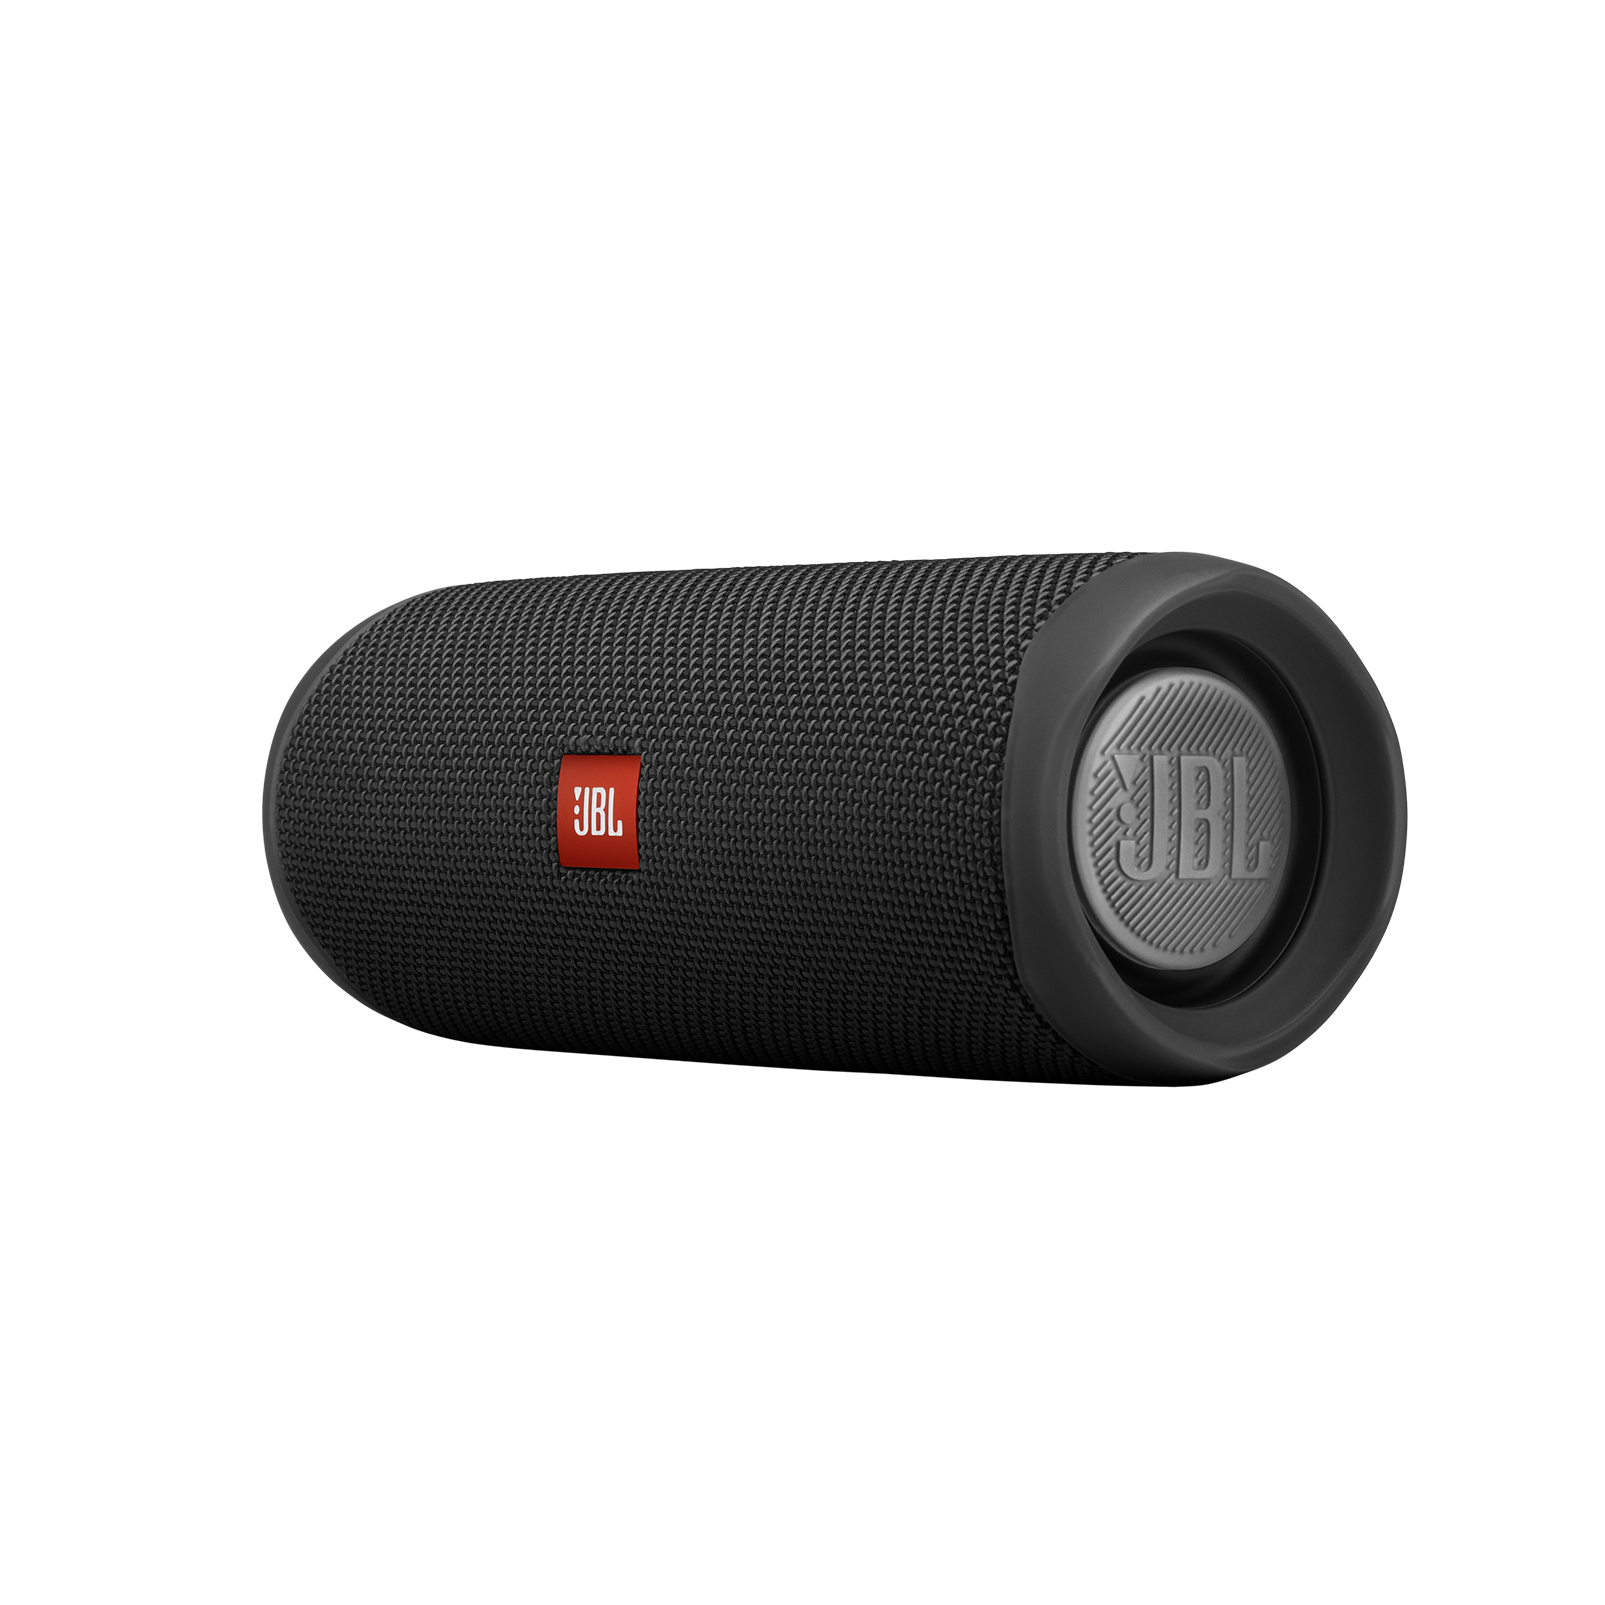 JBL FLIP 5 - Black Matte - Portable Waterproof Speaker - Detailshot 3